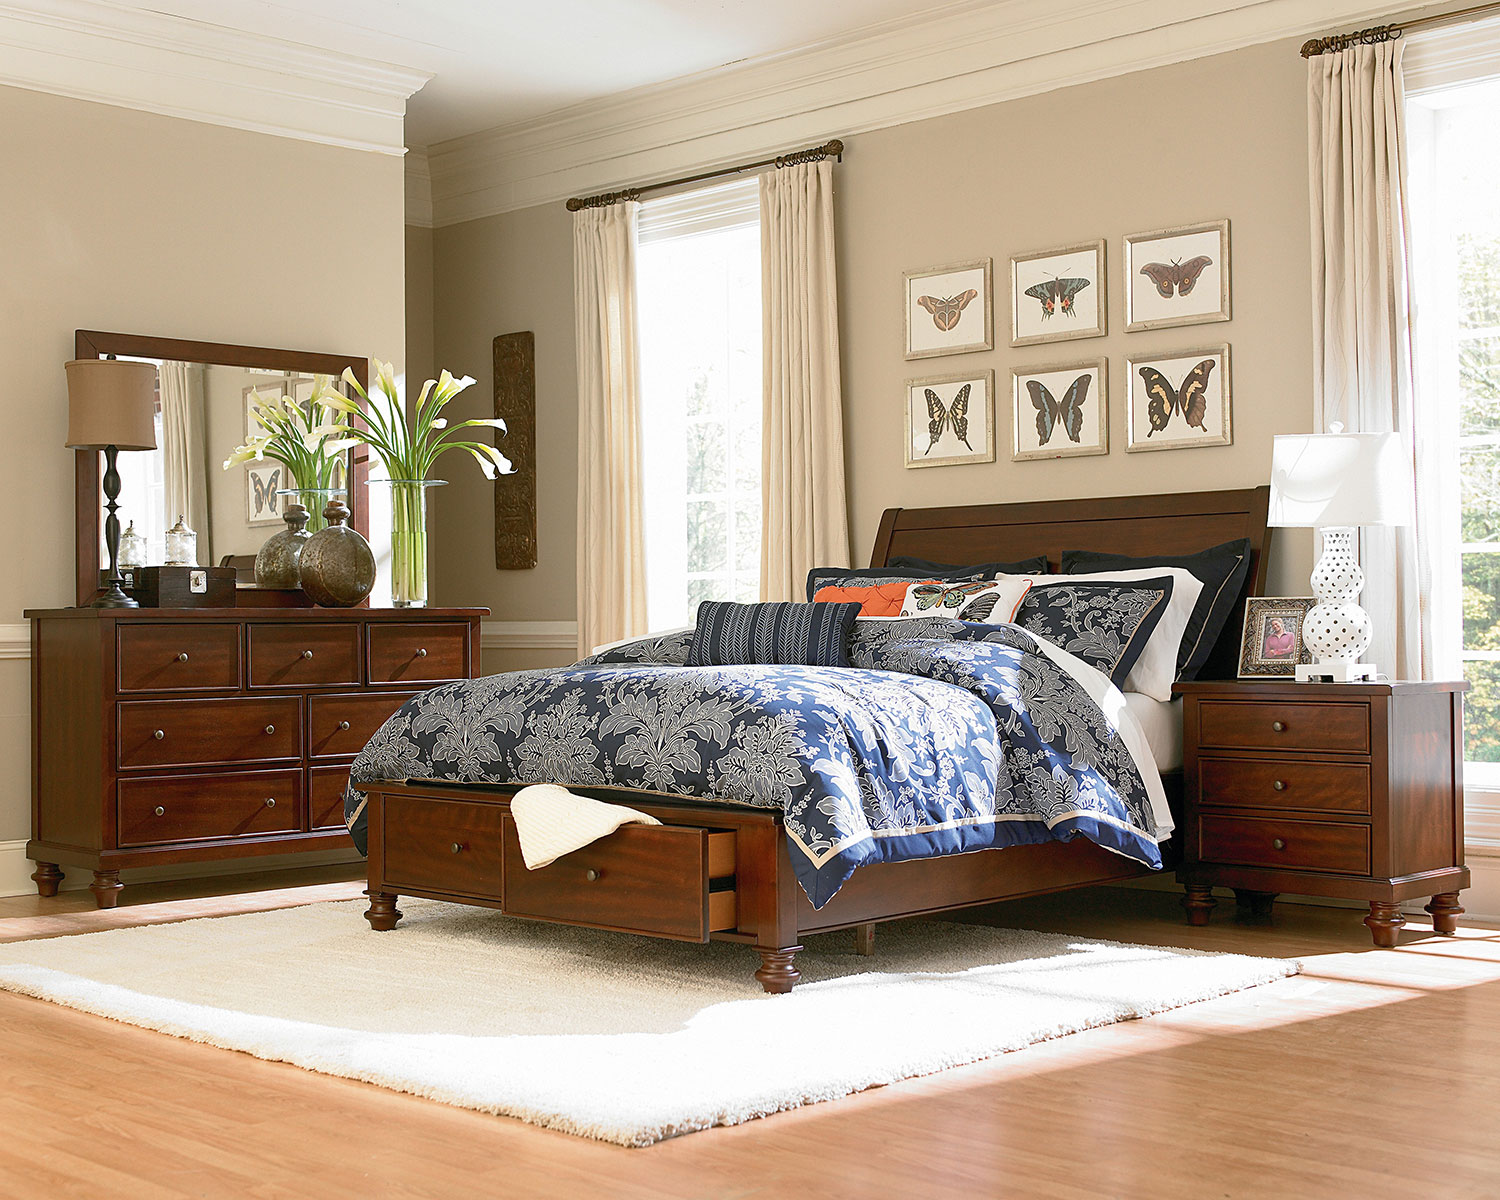 the camden collection levin furniture